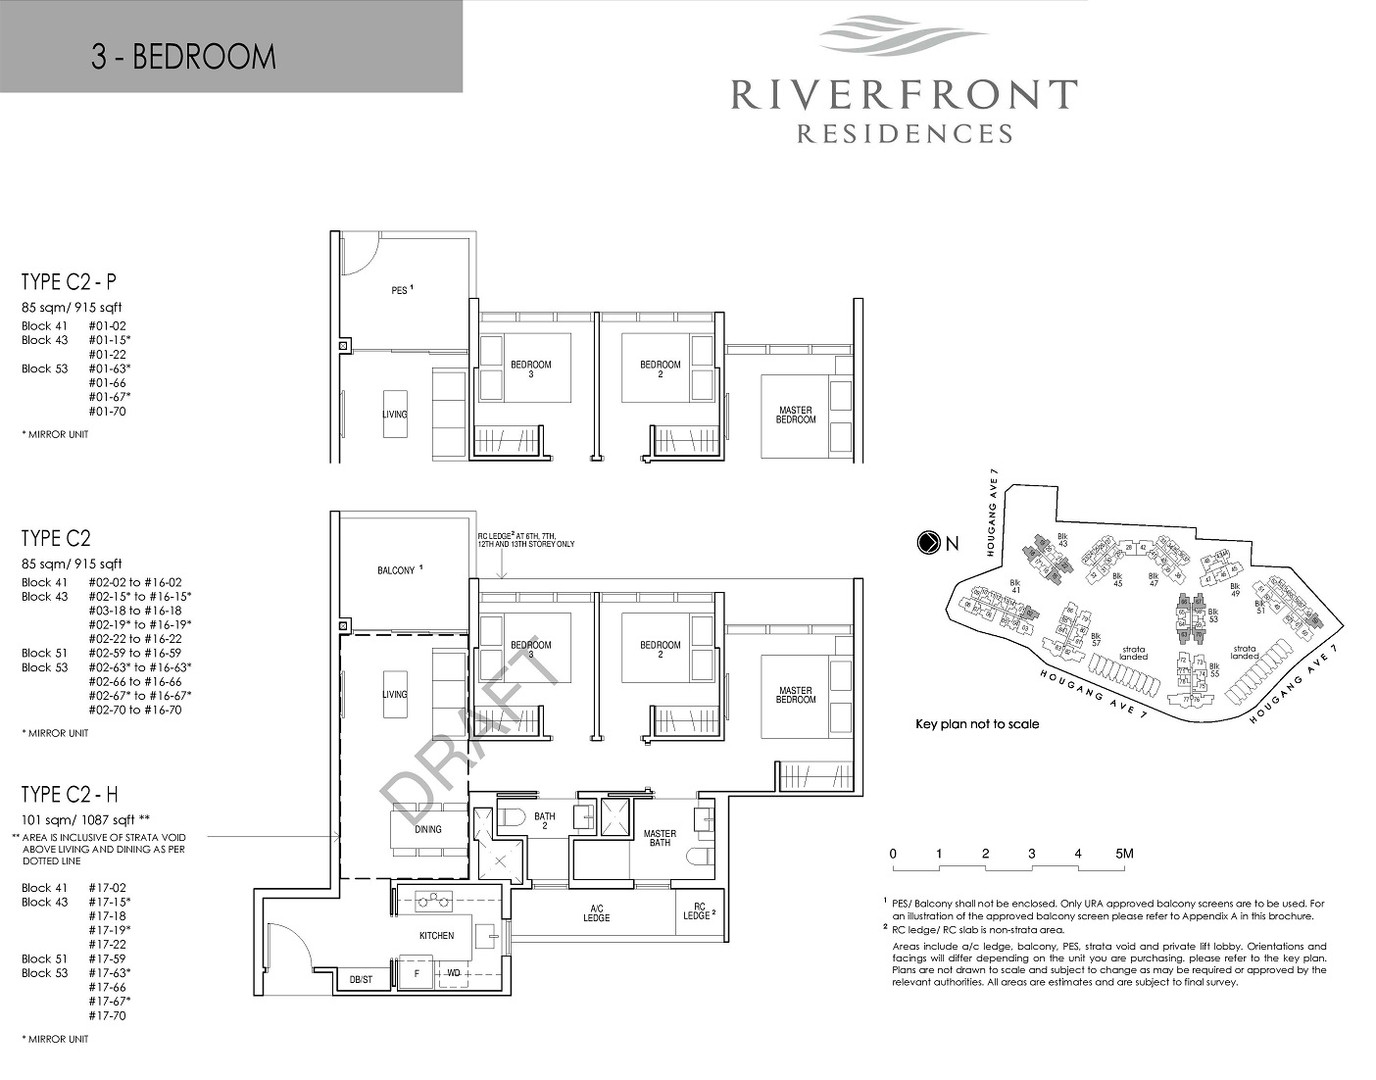 Riverfront Residences 3 Bedroom